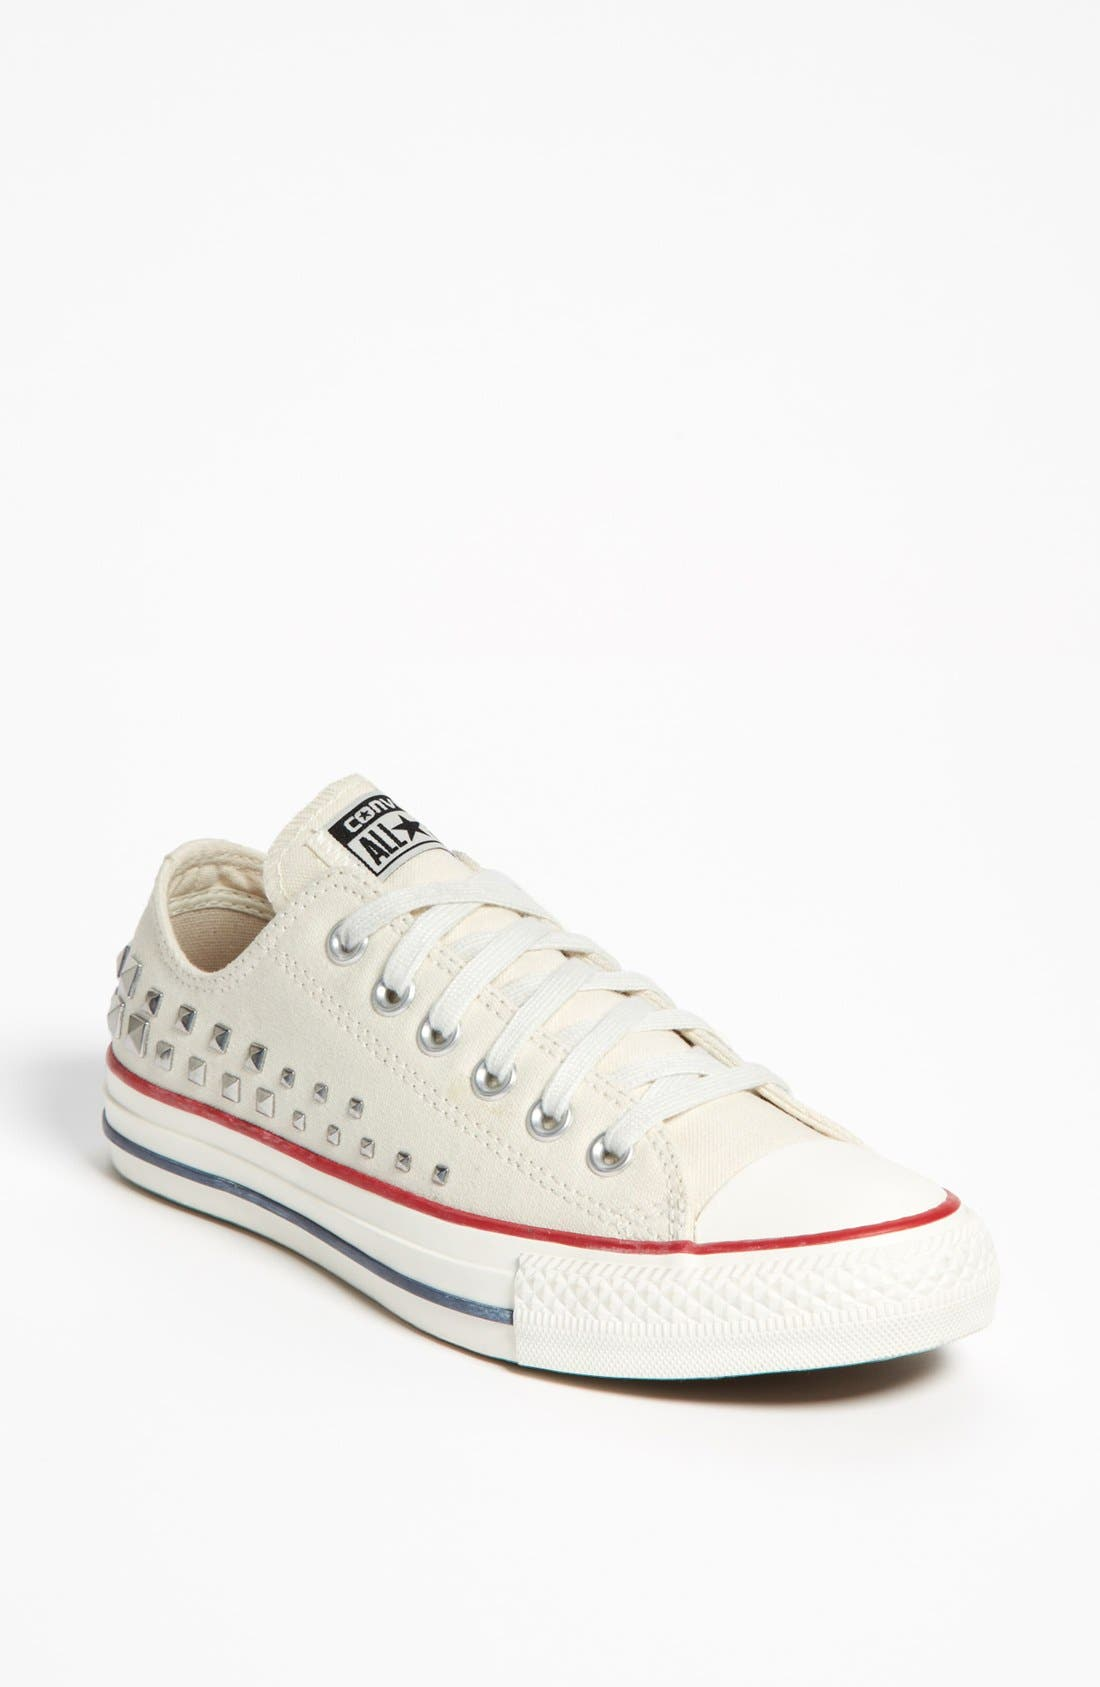 Main Image - Converse Chuck Taylor® All Star® 'Collar Studs' Sneaker (Women) (Online Only)